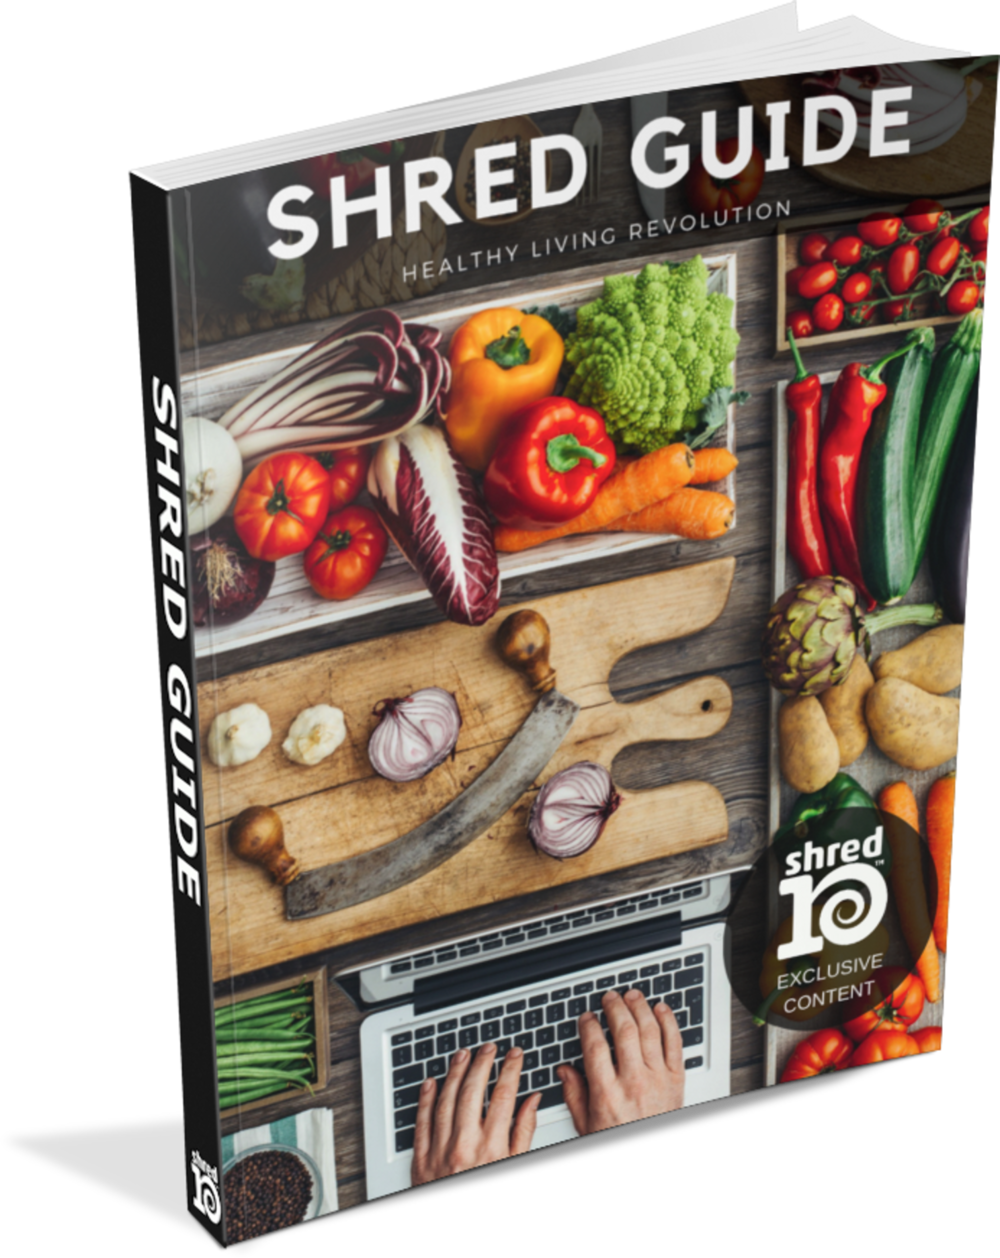 The Shred Guide eBook is available to all Shred10™ participants! It includes recipes, tips, and articles by healthcare professionals about the Shred10™ program.